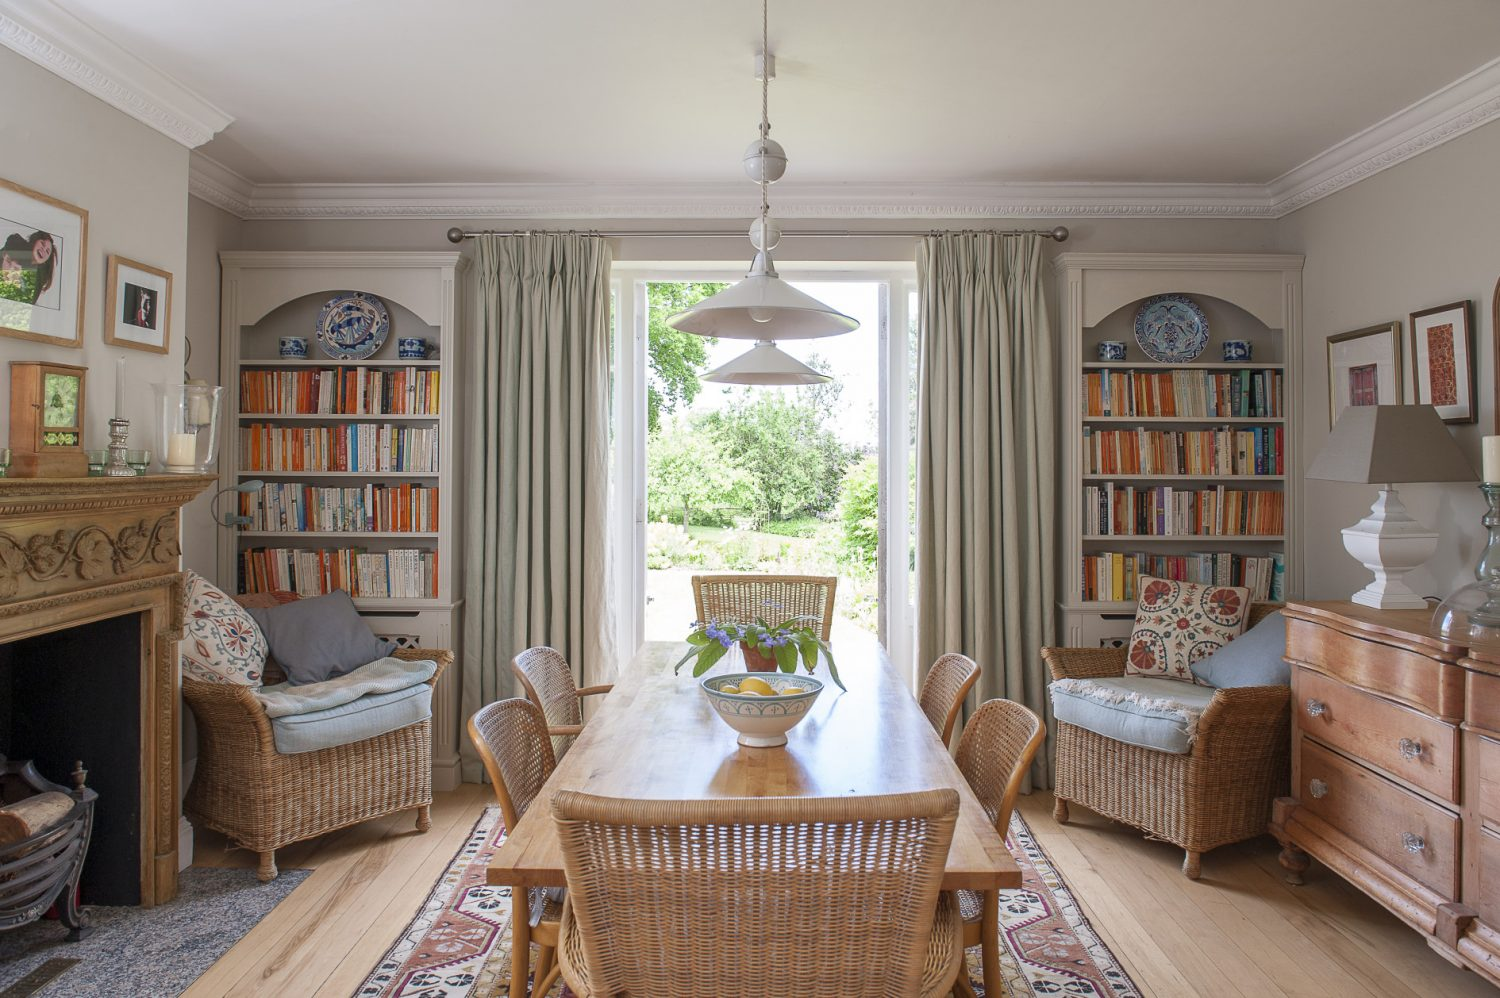 The breakfast room walls are painted in Farrow & Ball Shaded White, the plain wooden floors softened with rugs and kilims. The pretty pine fireplace was found in The Pantiles and the large Swedish chest opposite was one of the first pieces of furniture Tony and Debbie ever bought.